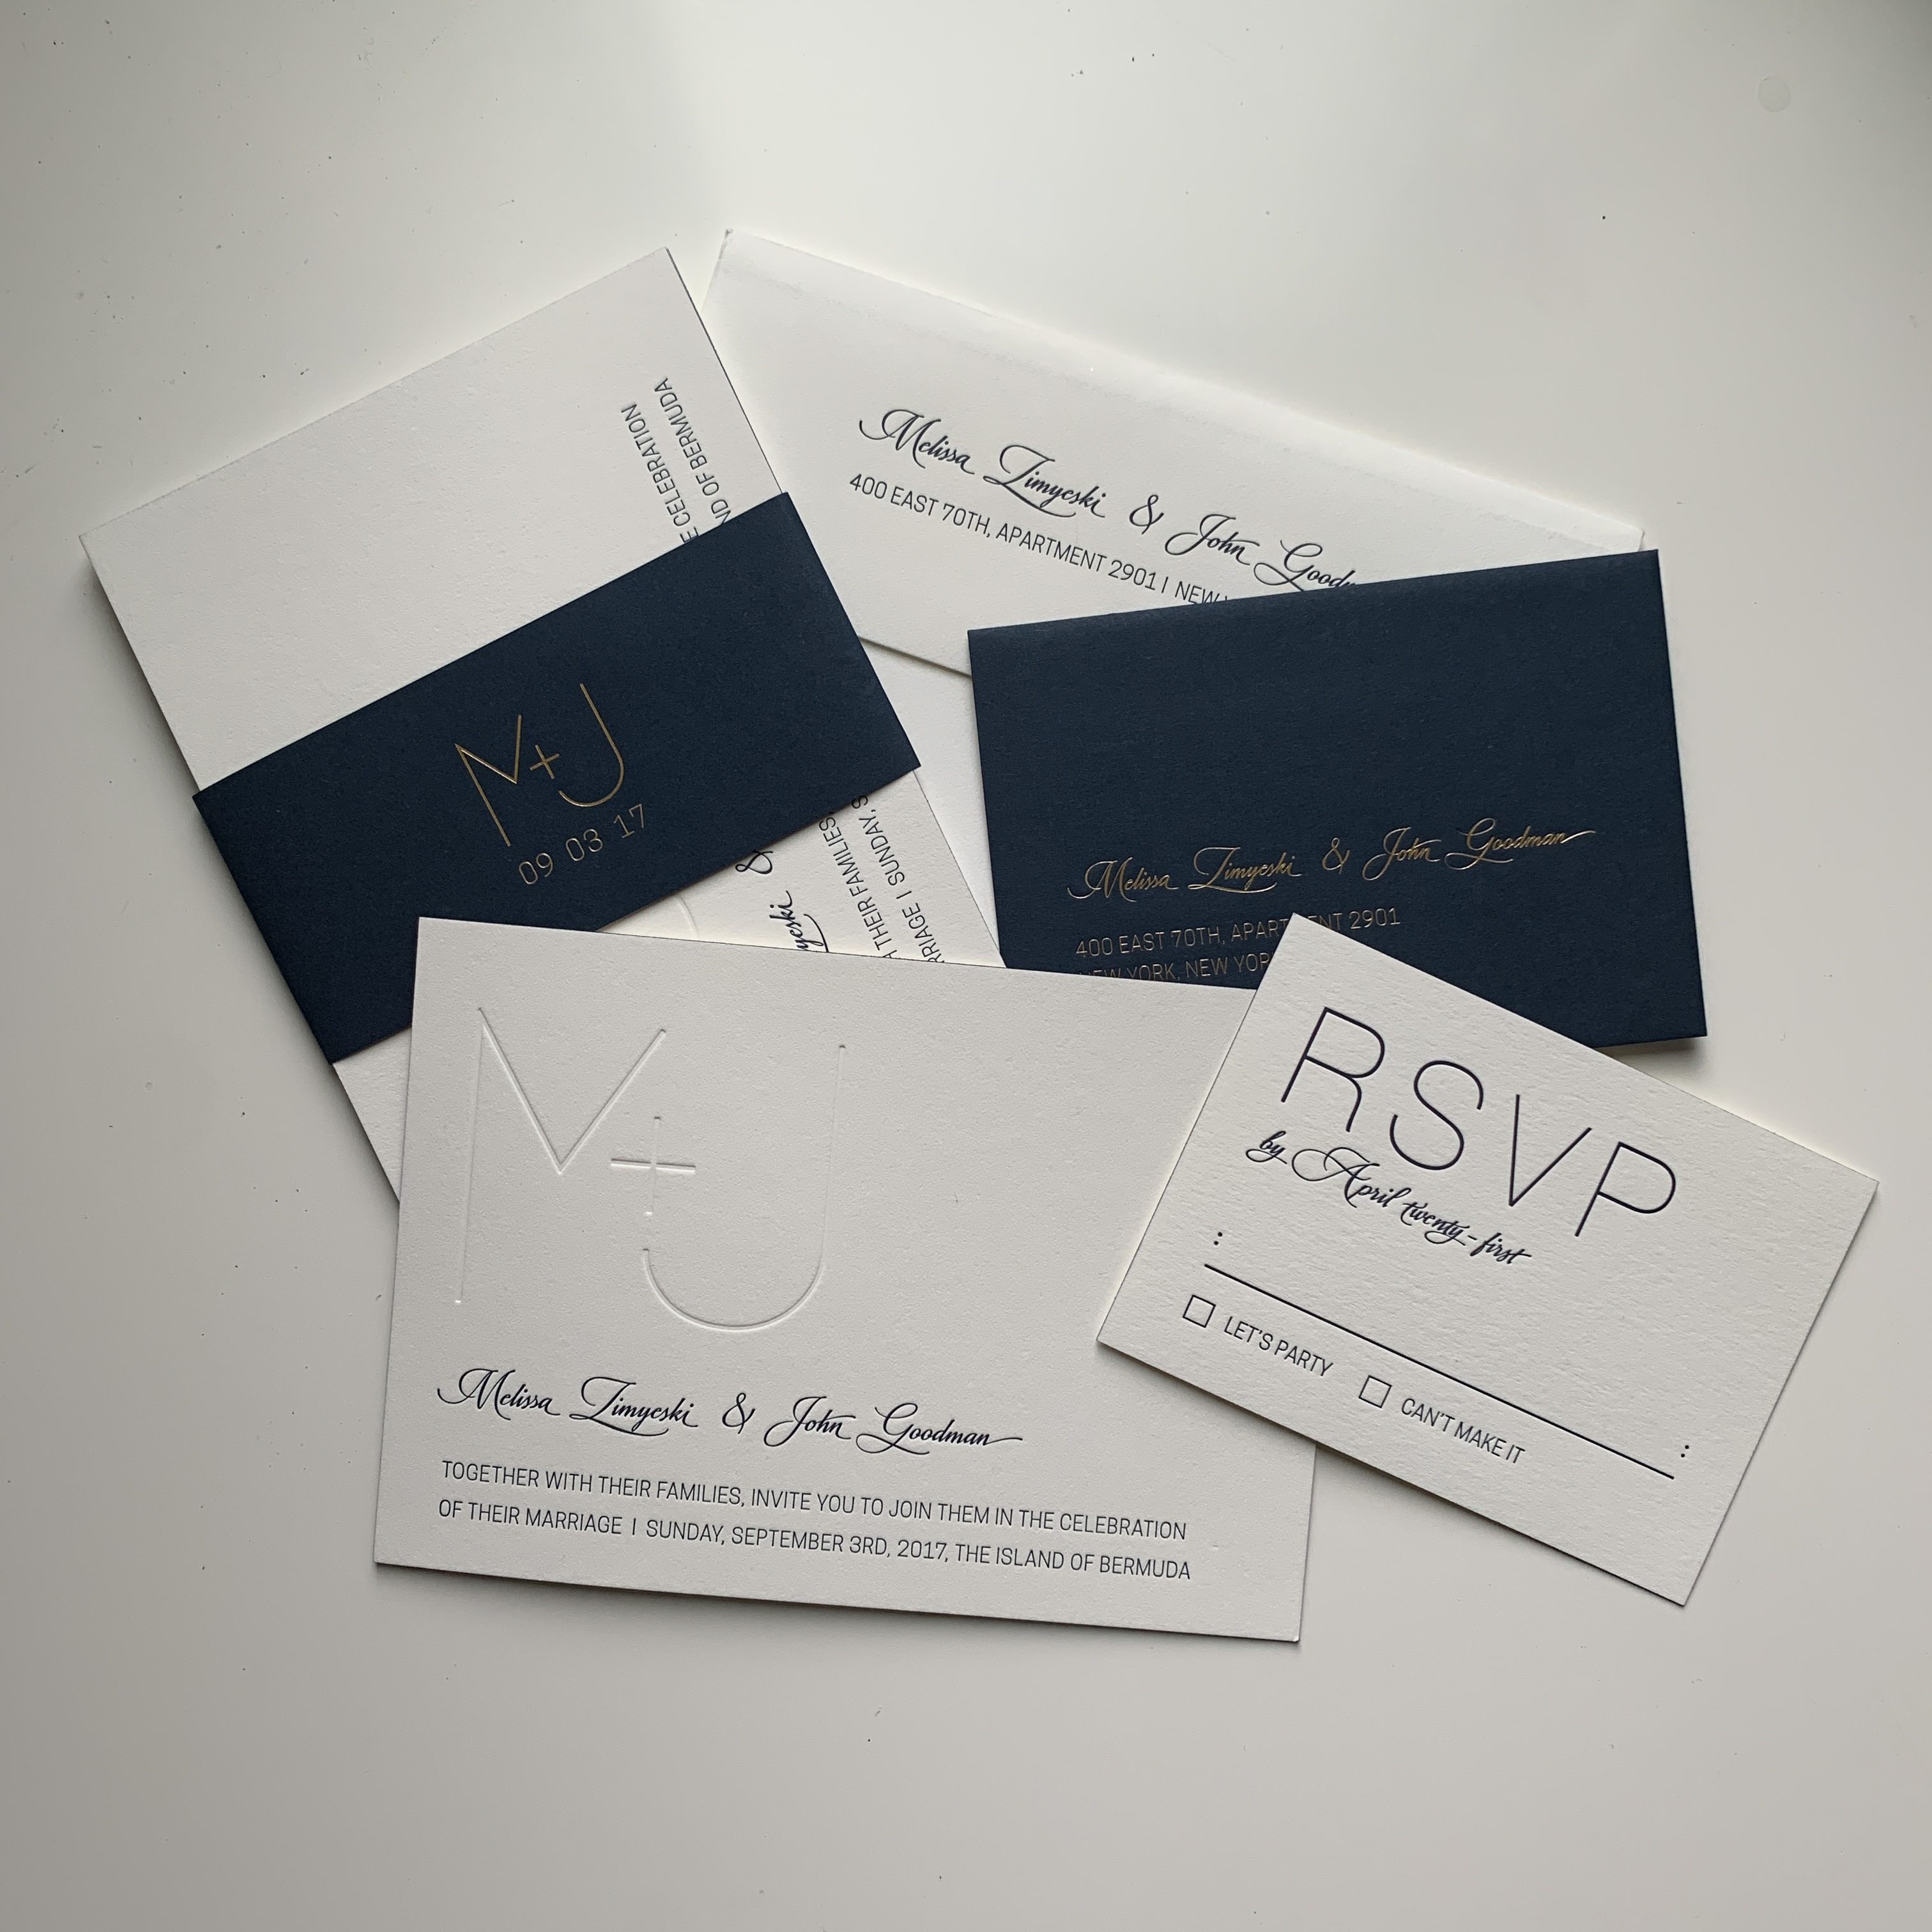 A wedding invite suite with M+J branding in white, navy and gold. Invite, RSVP, RSVP Envelope, Belly band, Printed envelope.